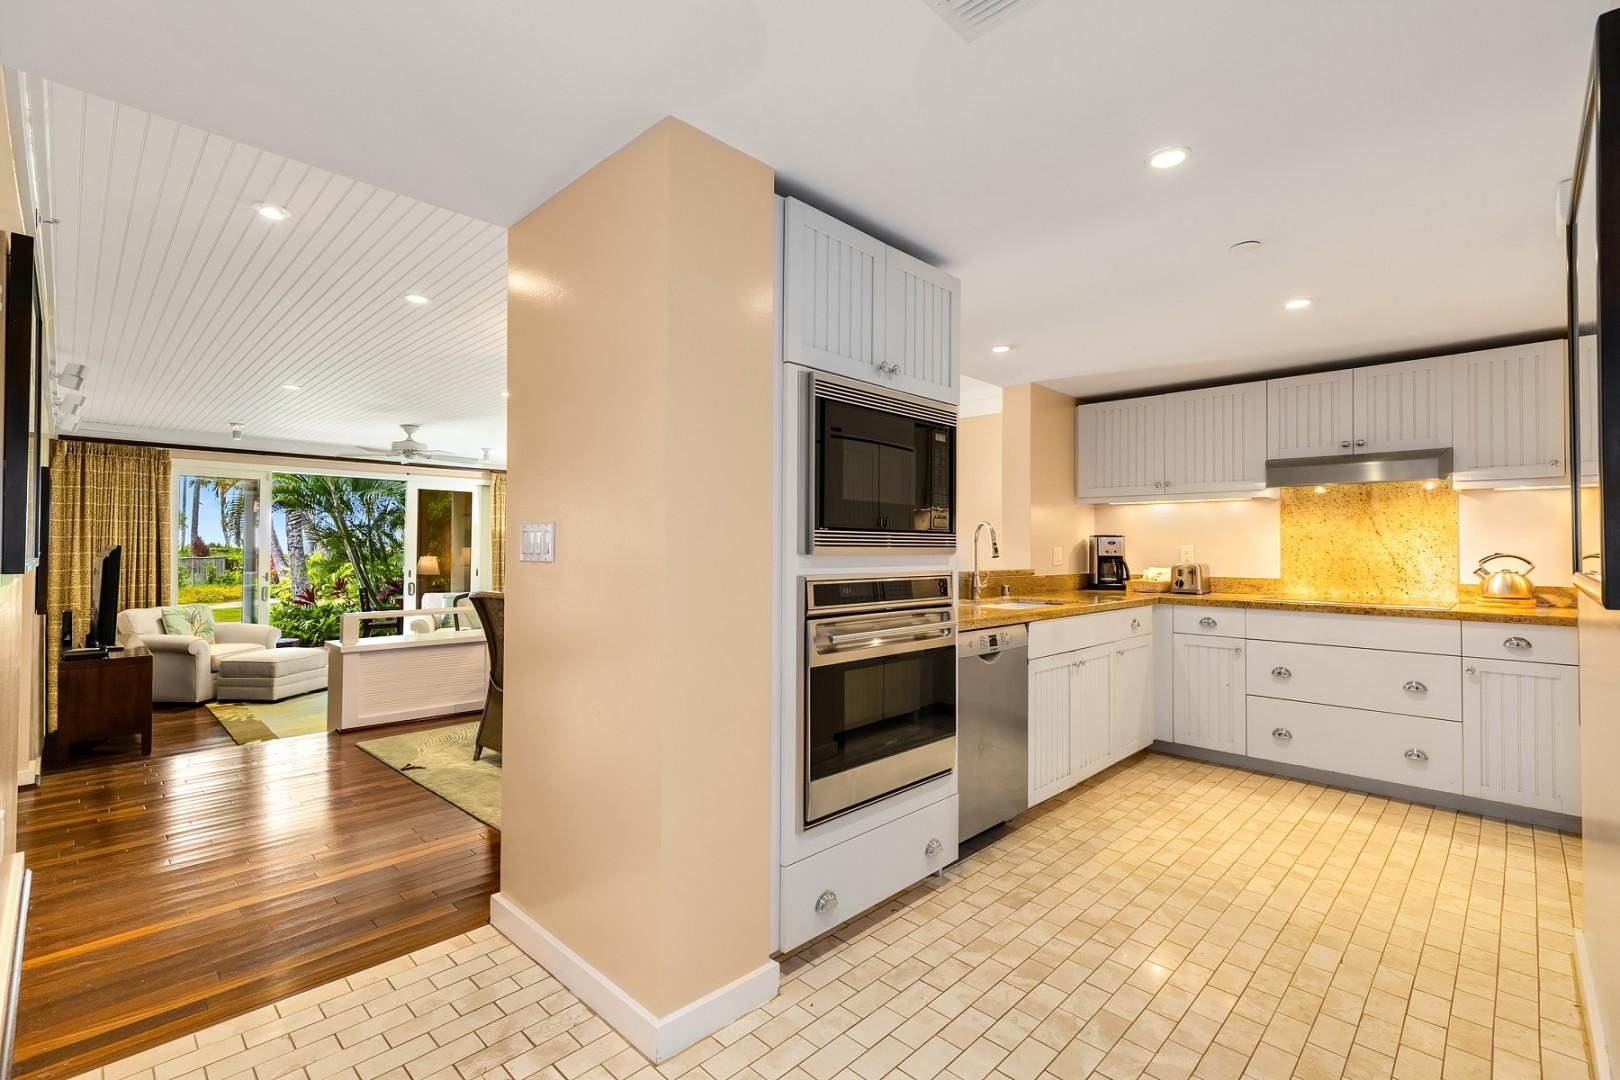 Kitchen with a clear view into the dining area and out into the beautifully landscaped garden.